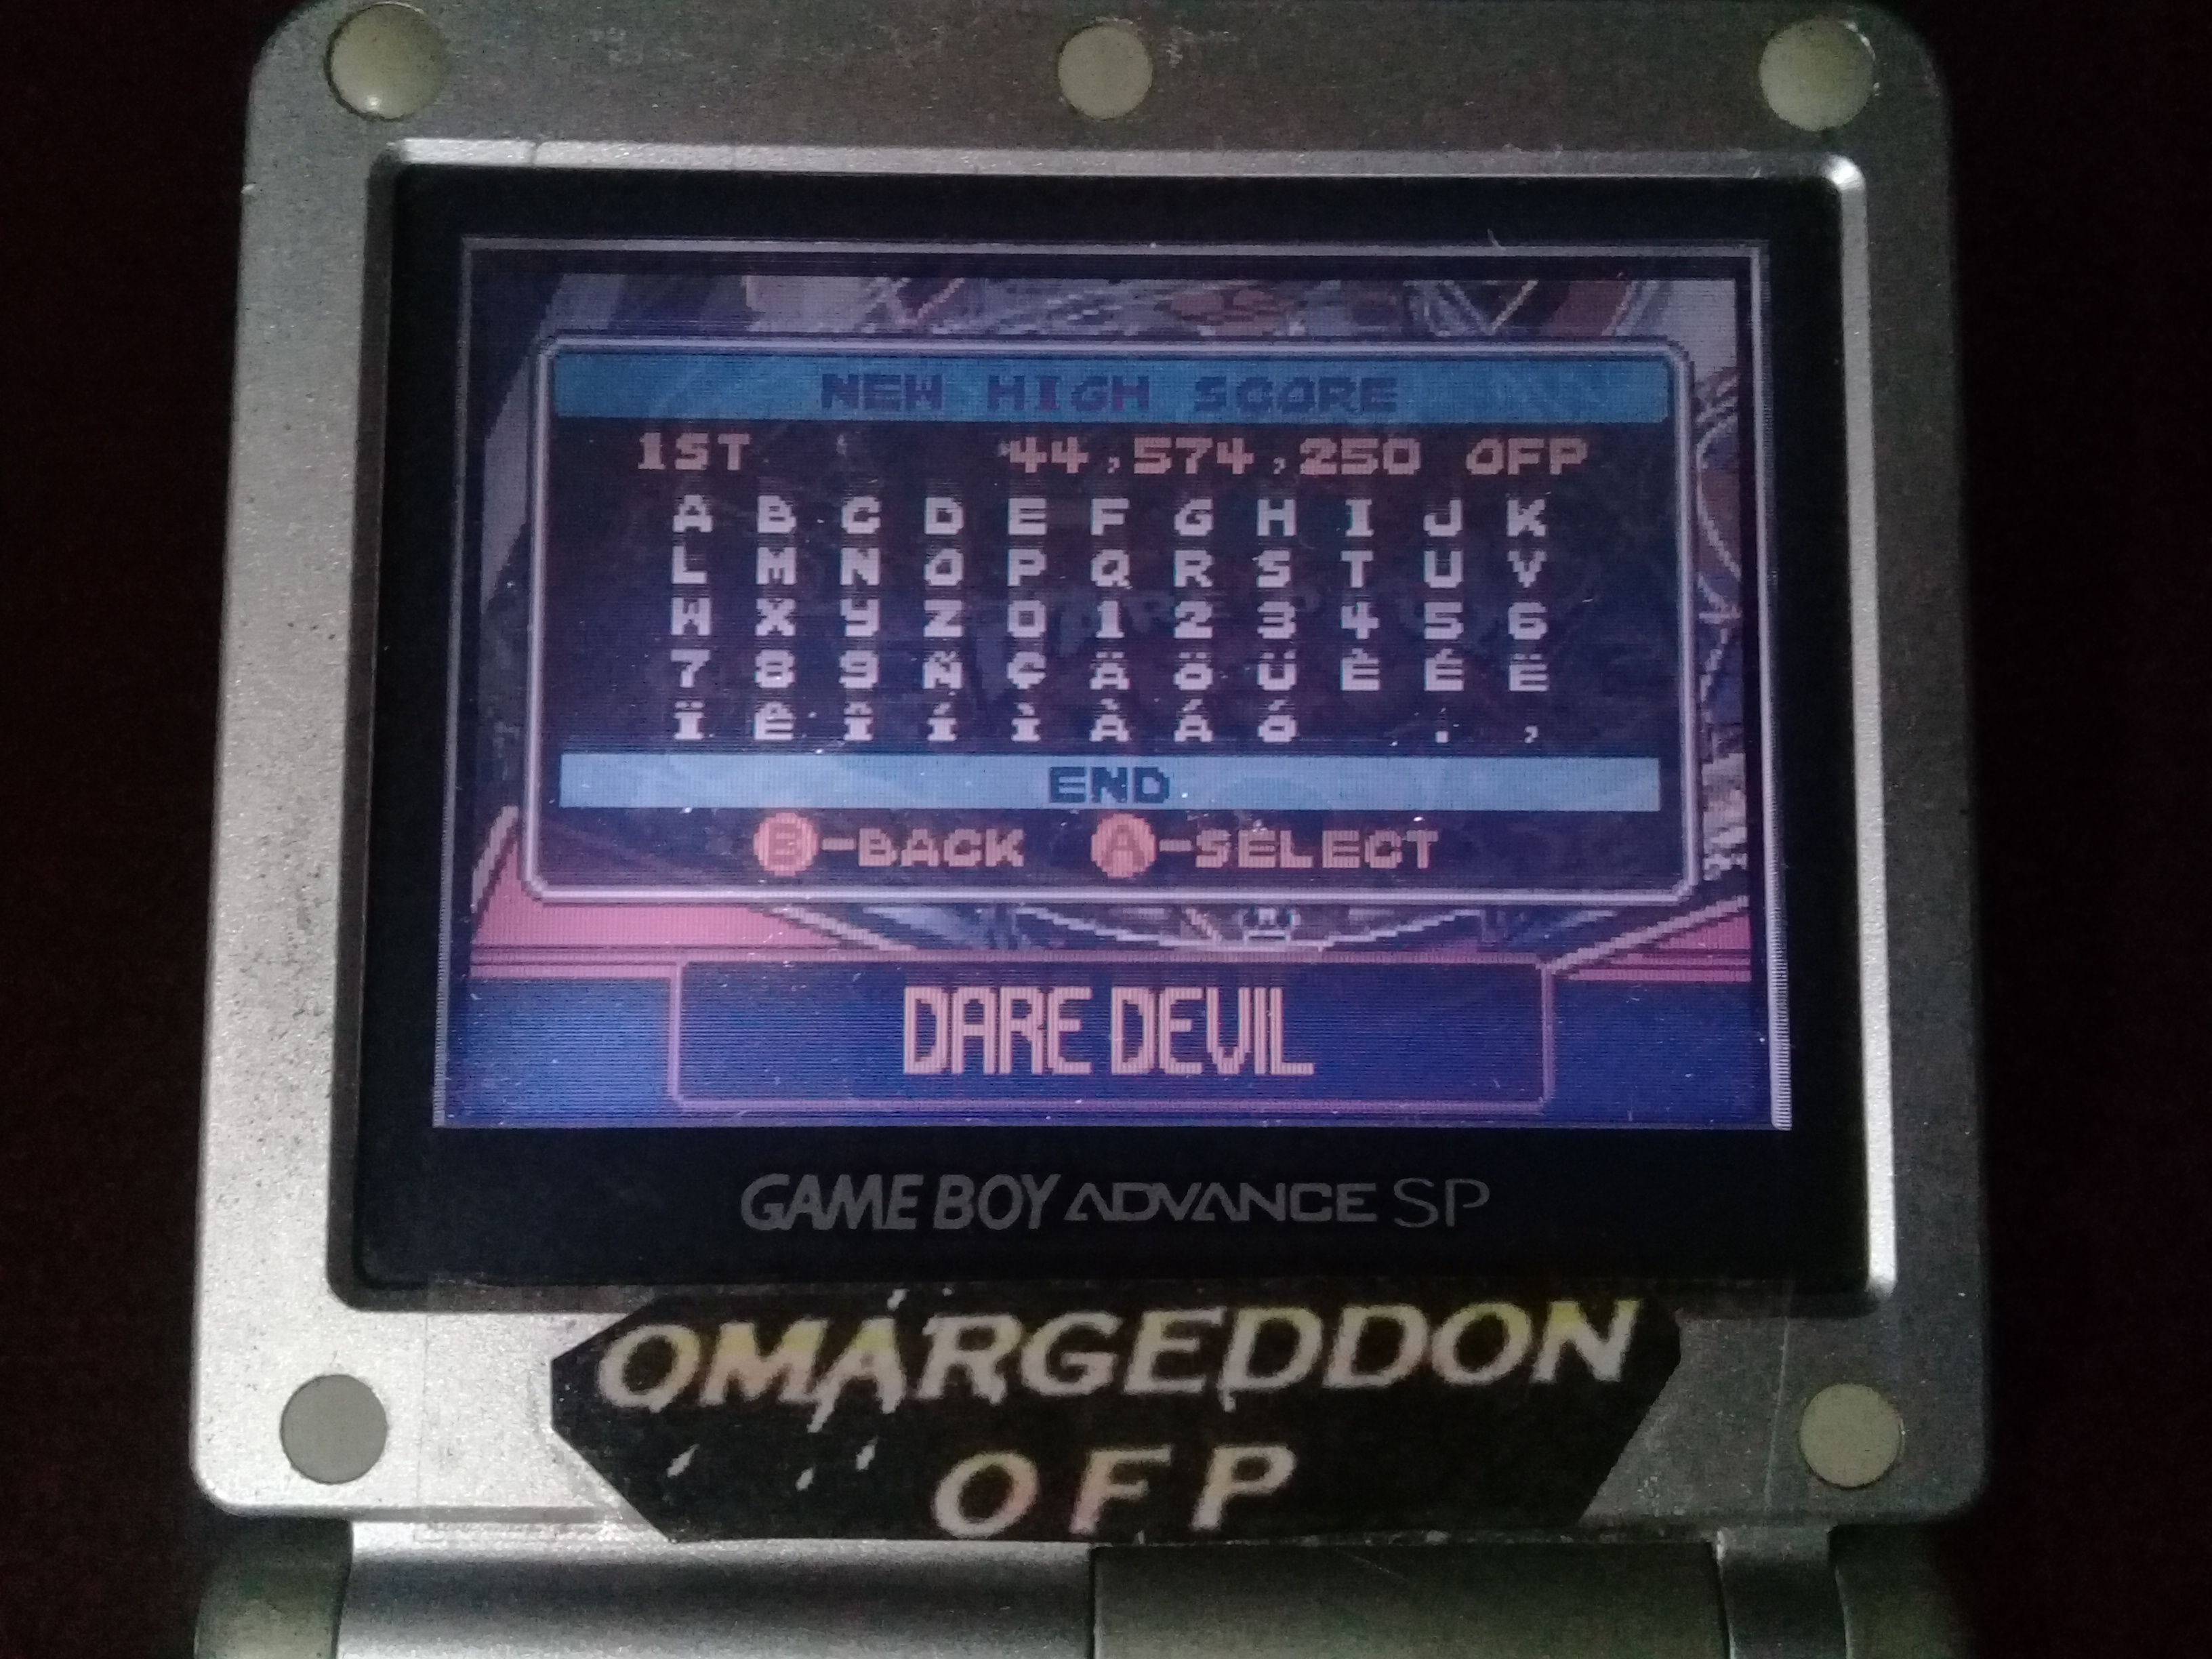 omargeddon: Pinball Advance: Dare Devil [5 Balls] [Hard] (GBA) 44,574,250 points on 2019-10-03 00:17:08